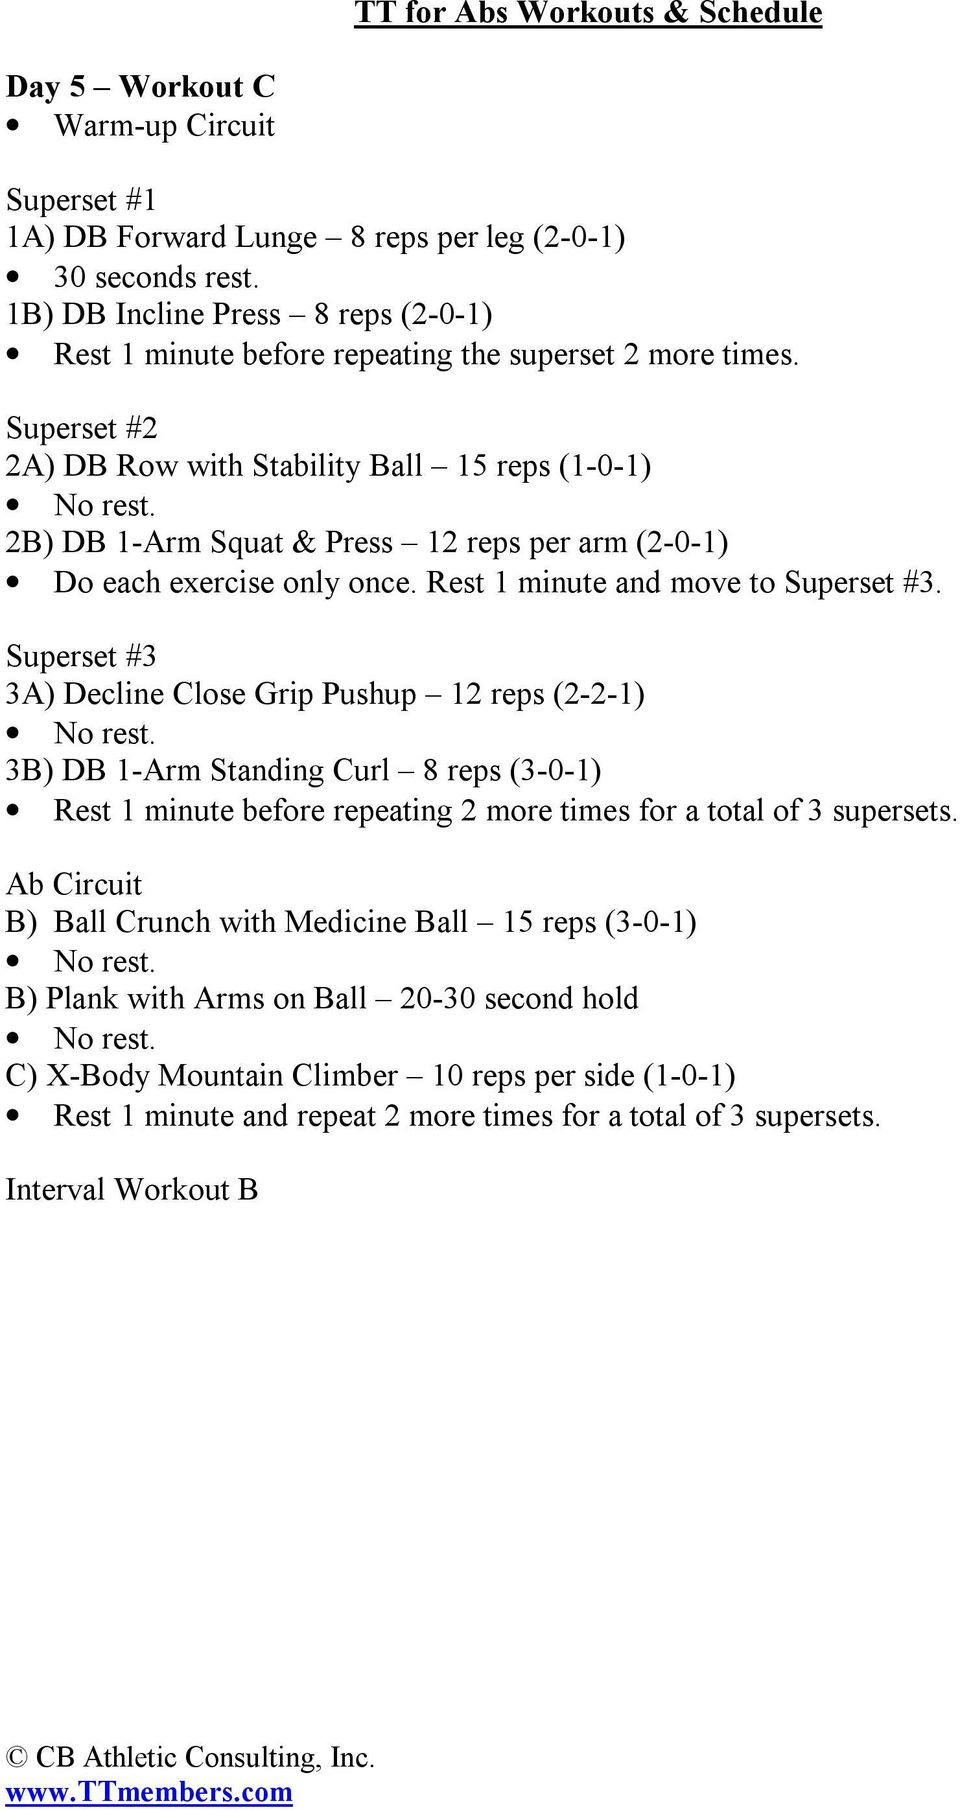 Cb Athletic Consulting Inc Pdf Supersets More Circuit Workouts Cardio Workout Gym 2b Db 1 Arm Squat Press 12 Reps Per 2 8 Day 6 Interval Training